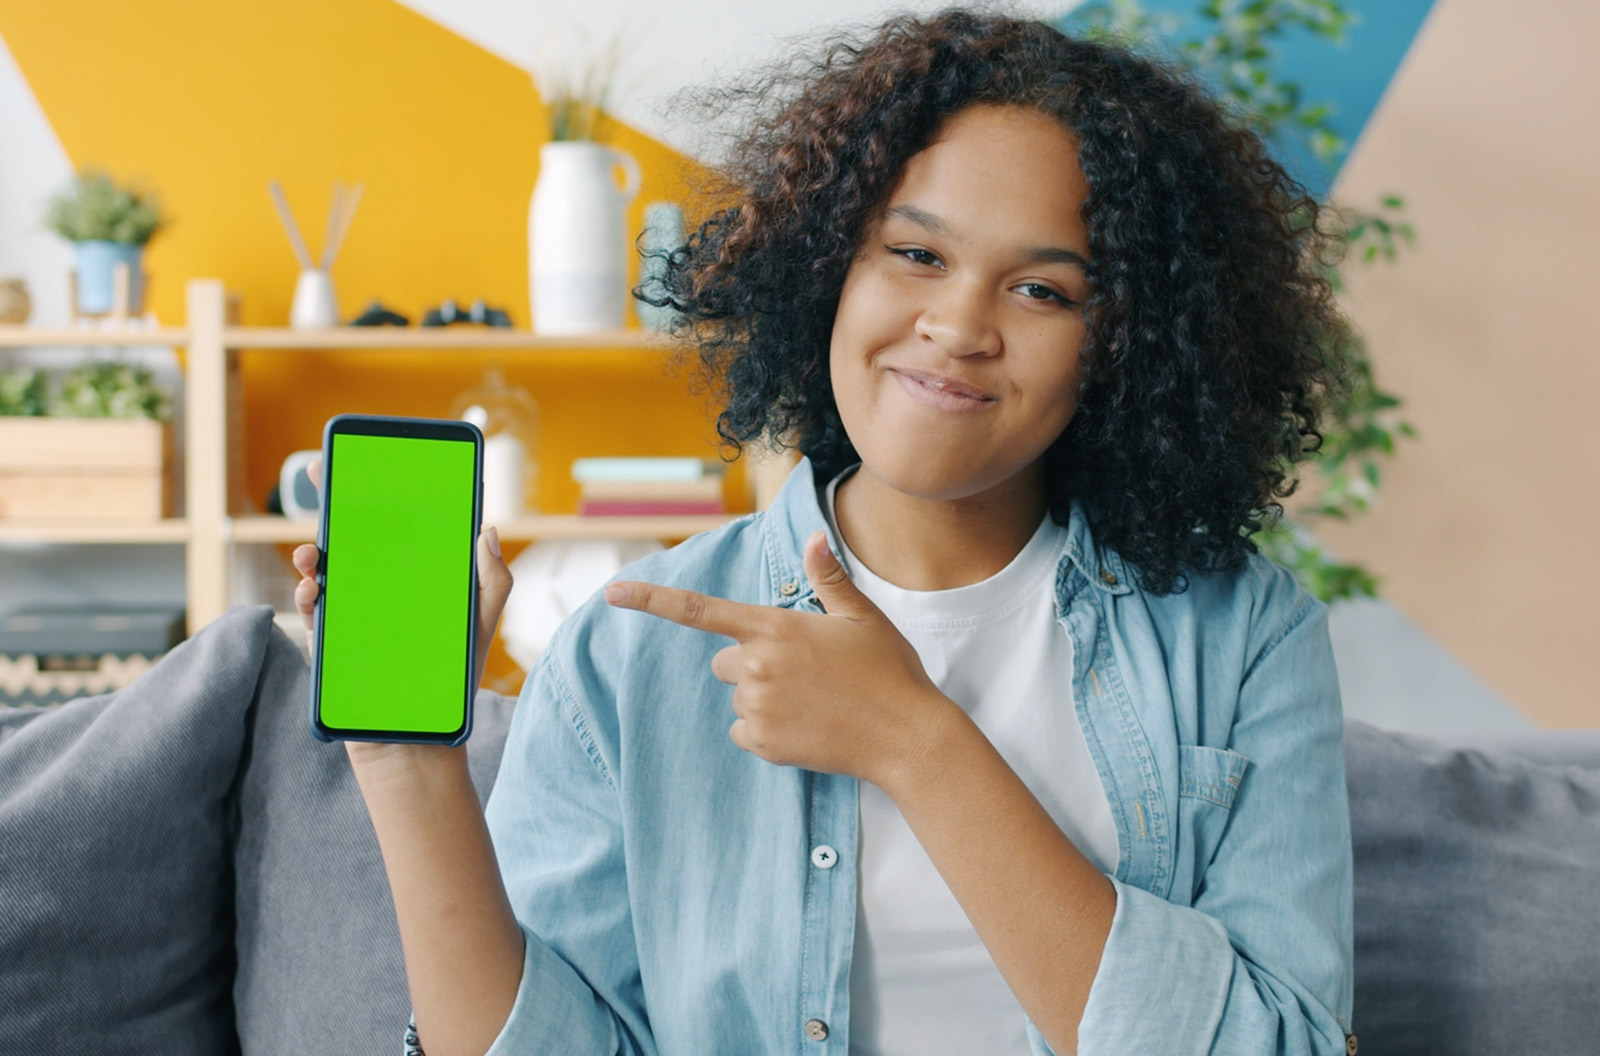 Slow motion of young woman holding smartphone pointing at screen